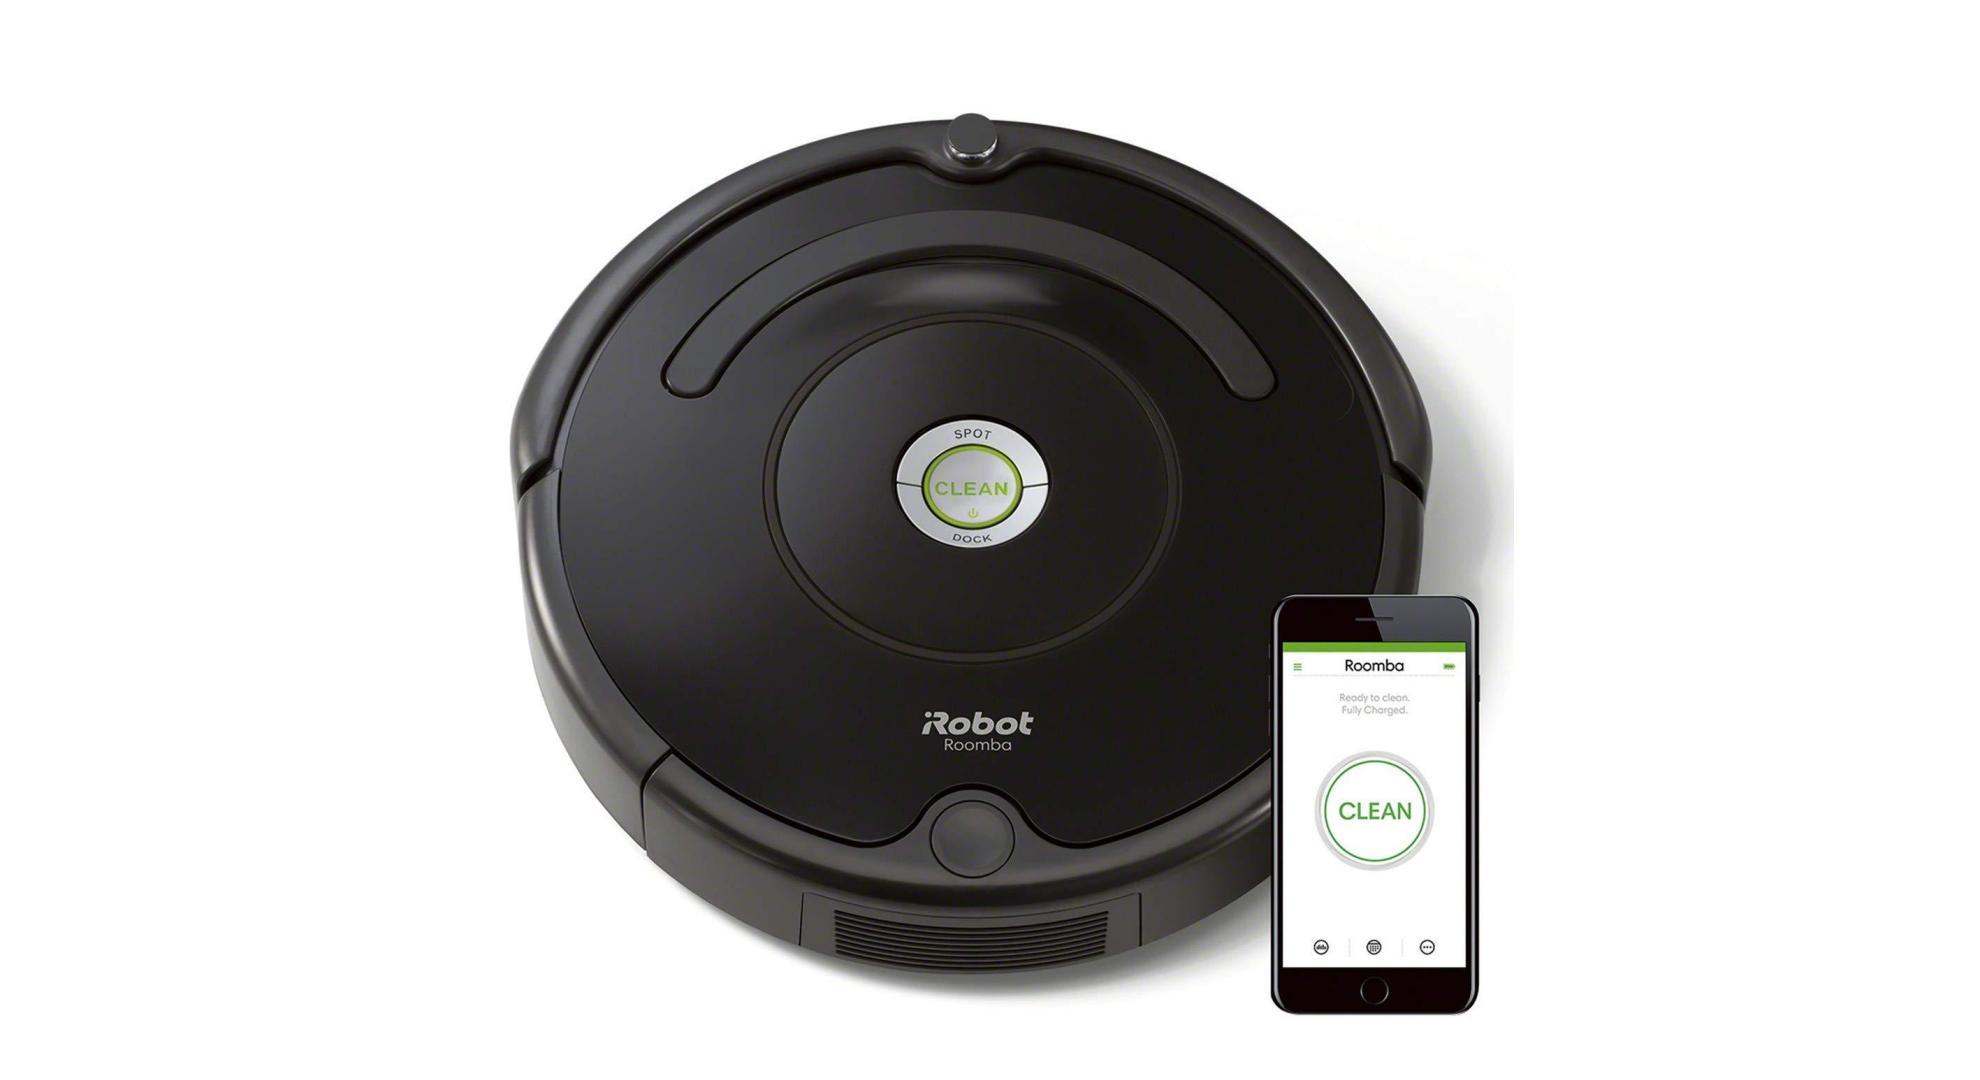 🔥 Prime Day 2019 : 140 euros de réduction sur l'aspirateur-robot Roomba 671